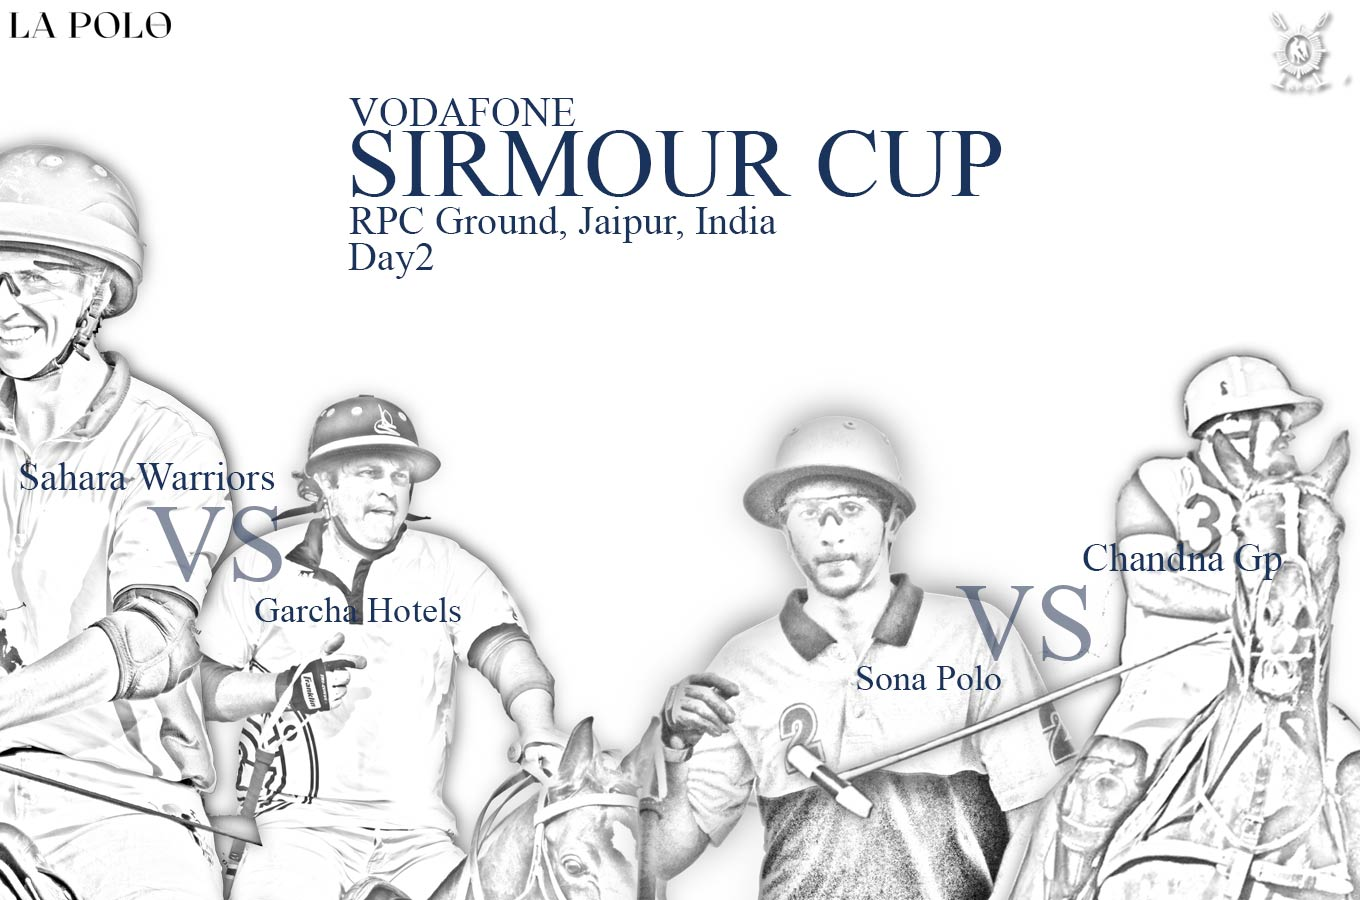 A Series Of Intense Battles On Second Day Of Vodafone Sirmour Cup